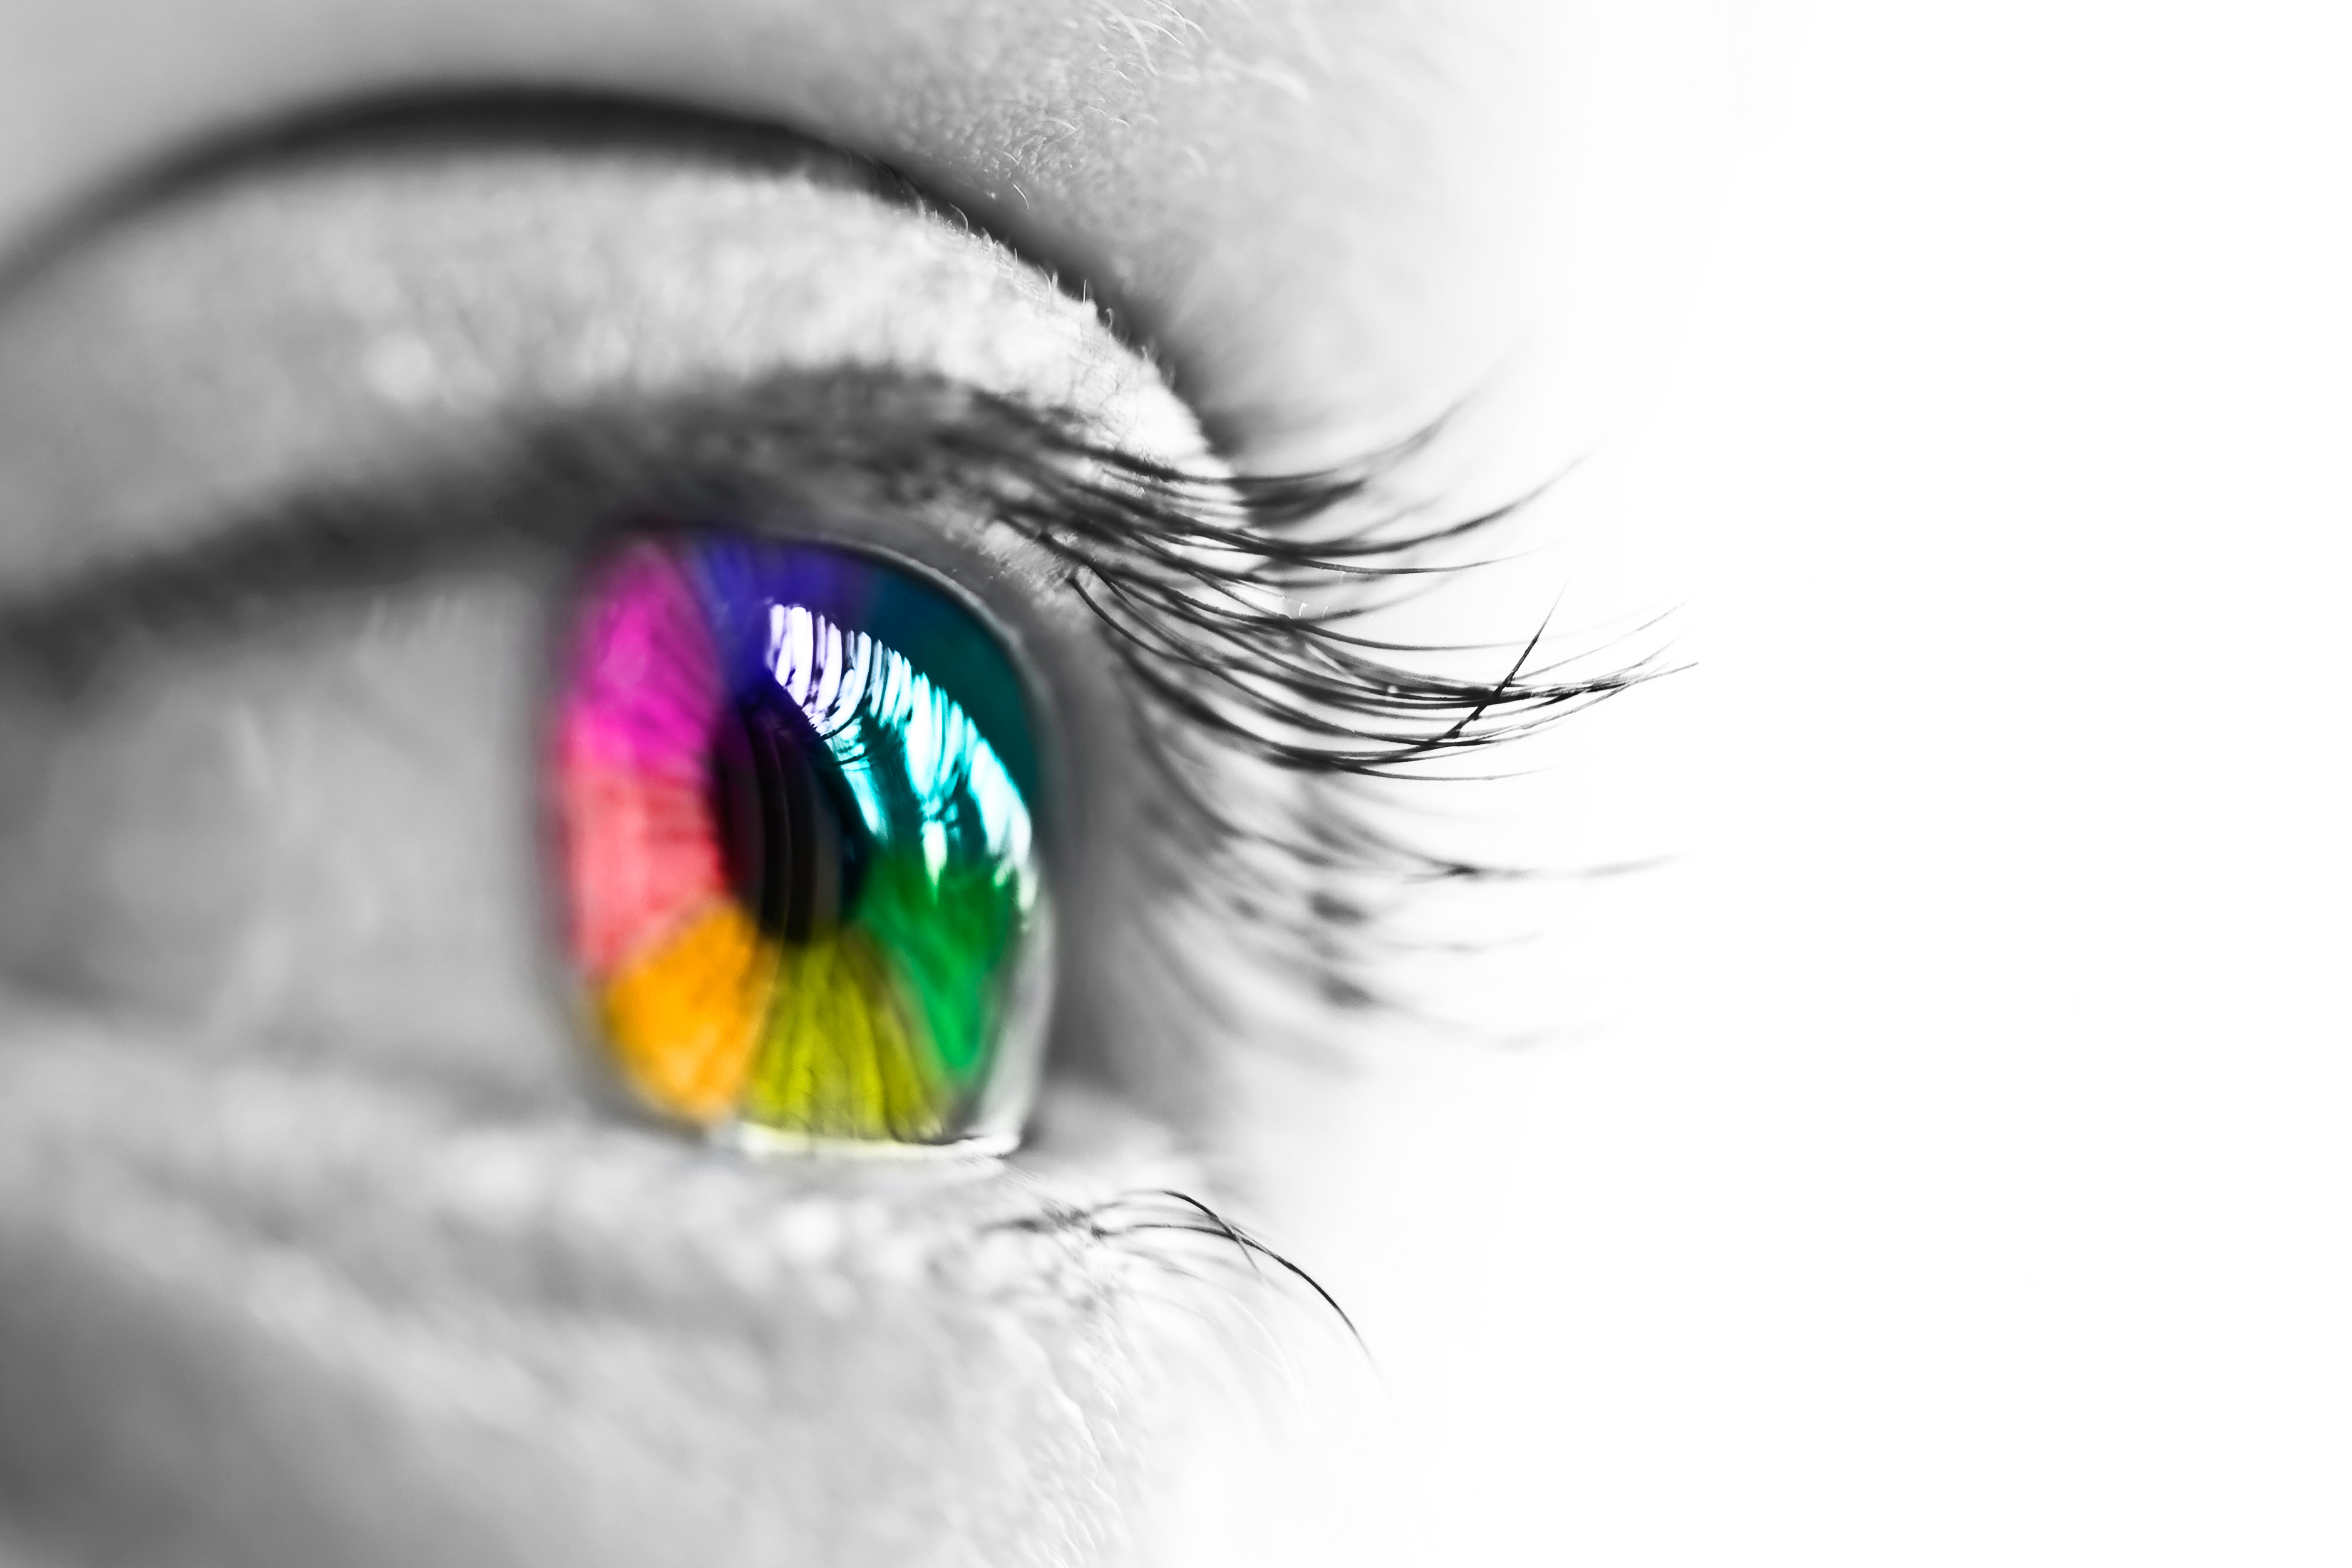 A black and white picture of an eye with a bright rainbow colored iris.